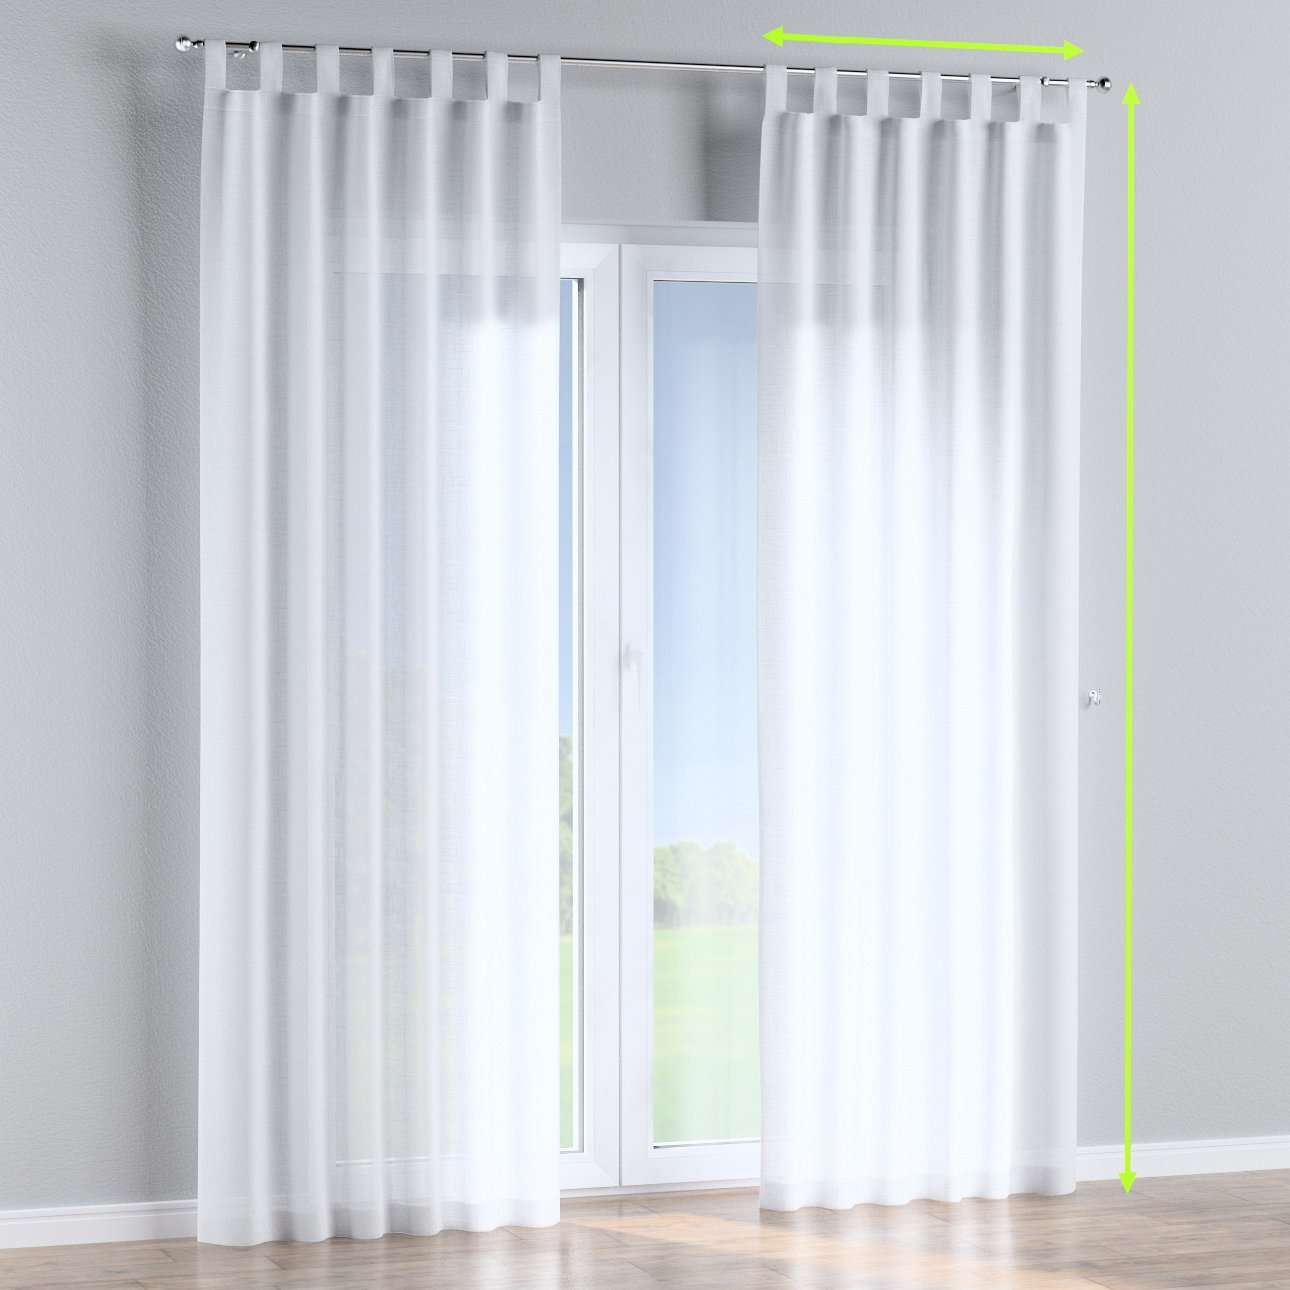 Tab top curtains in collection Romantica, fabric: 128-77